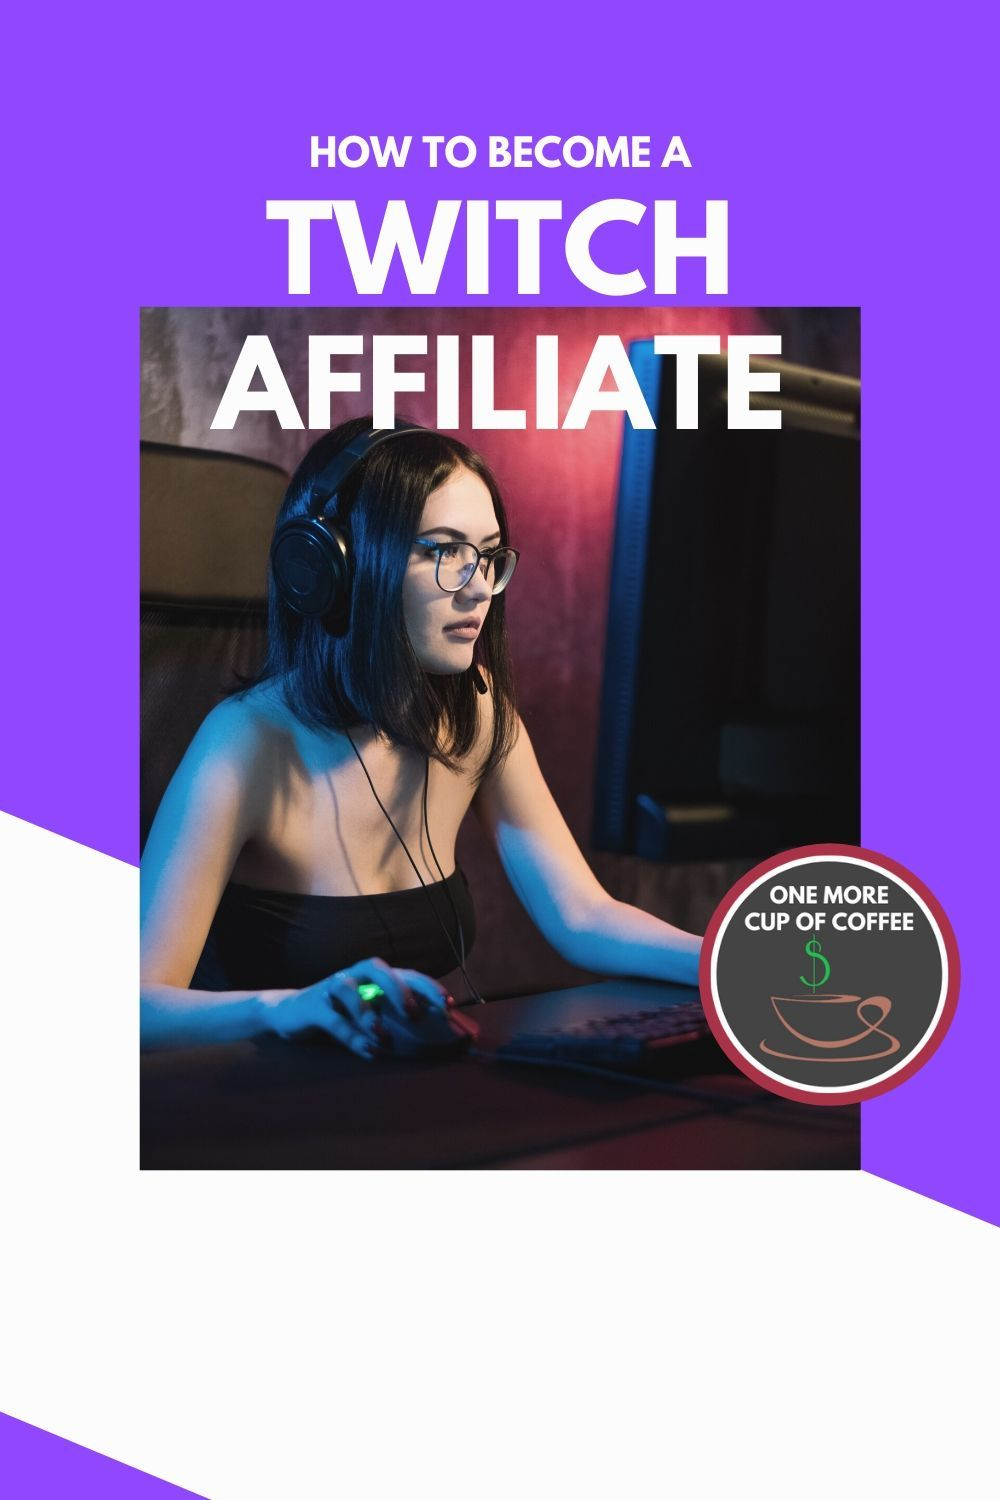 How To Become A Twitch Affiliate Affiliate Partner How To Become Twitch